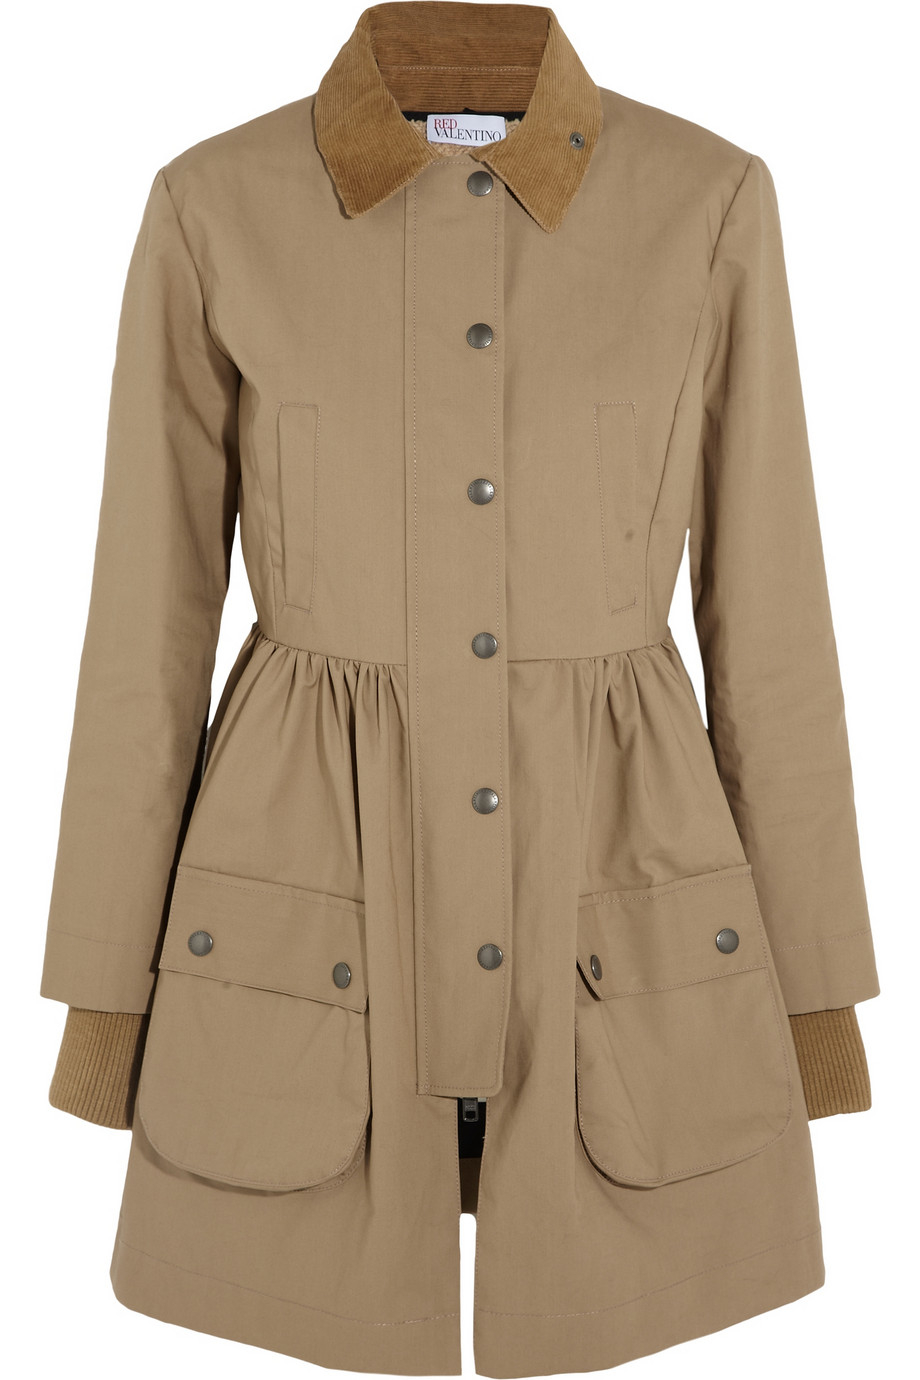 Red valentino Cotton Mackintosh Coat in Natural